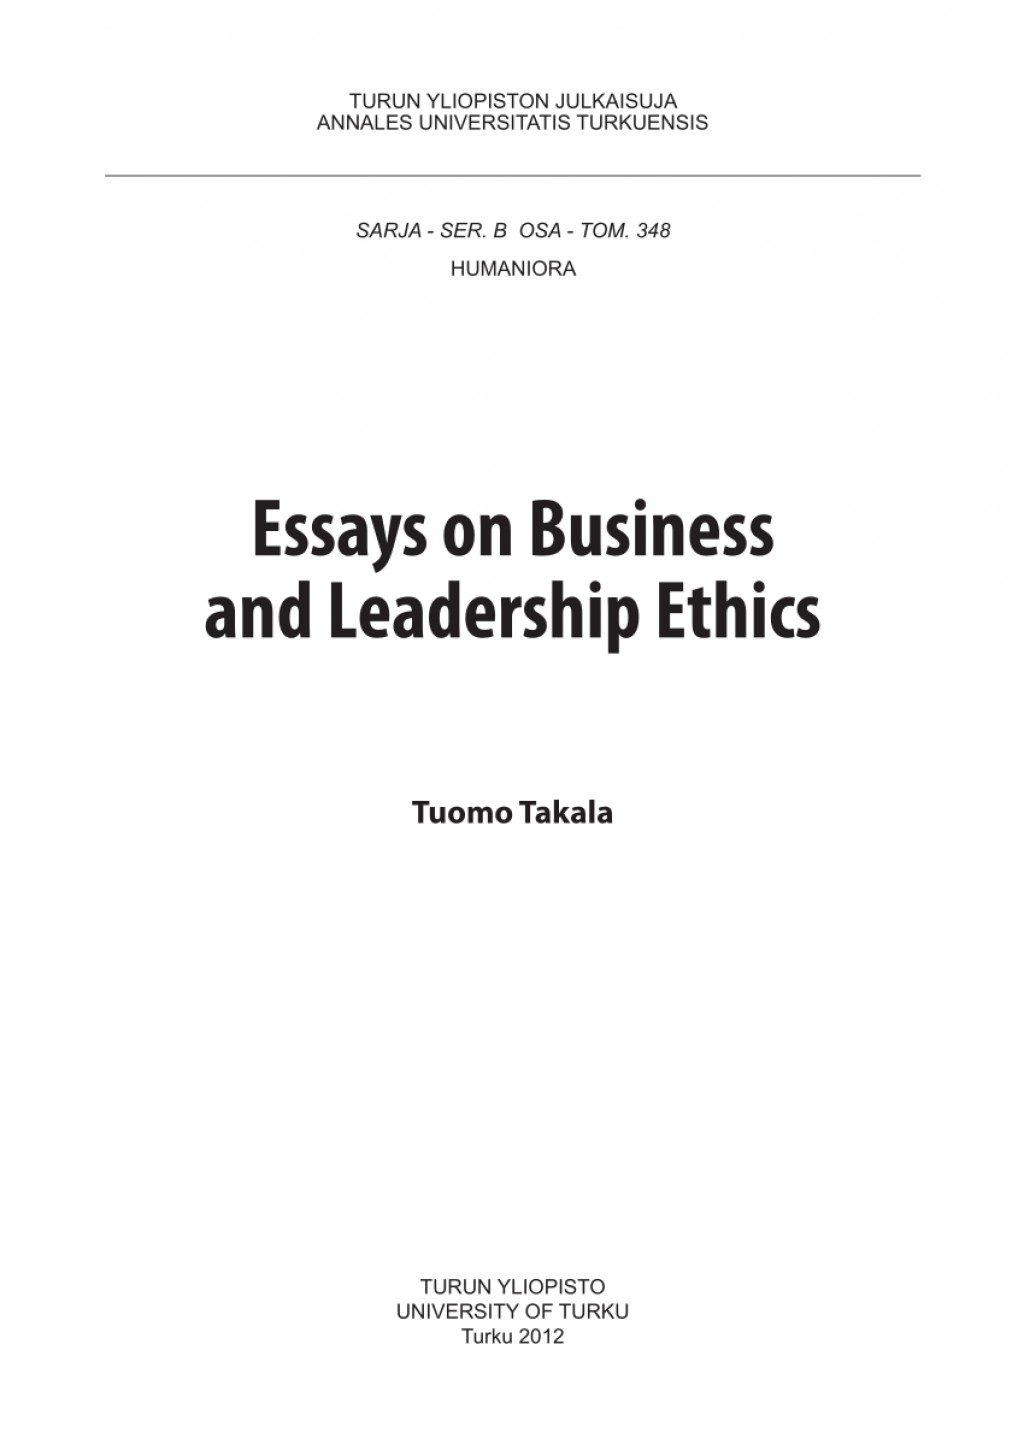 009 Business Ethics Essay Example Awful Questions And Answers Pdf Topic Ideas Large